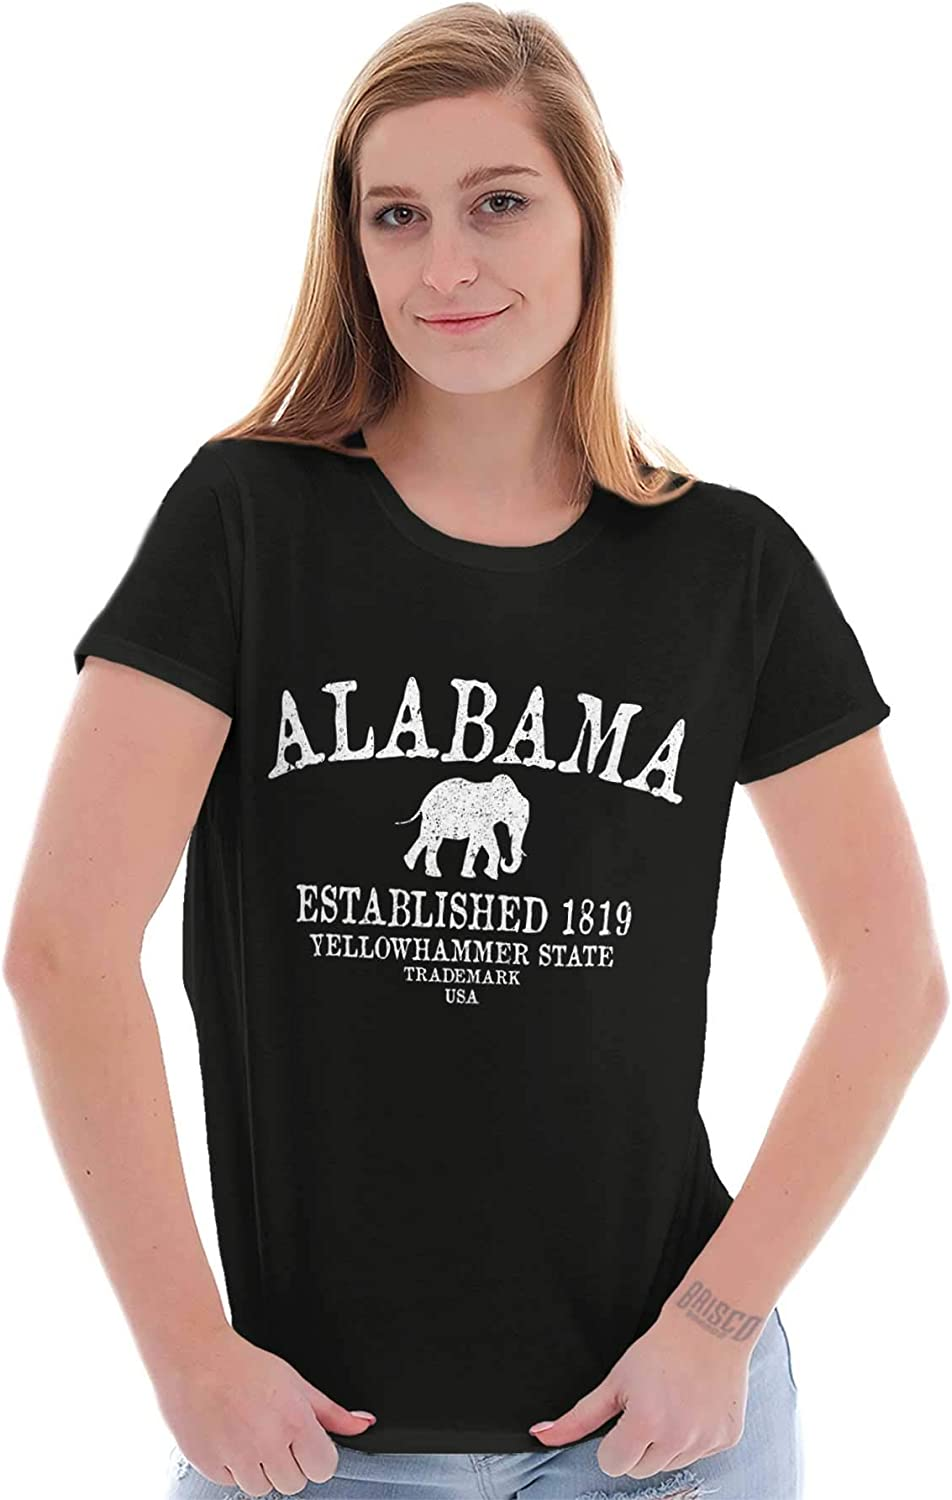 Classic Teaze Alabama Souvenir Tourist Sport Gym Workout Ladies T Shirt 617YYI8H7ZL